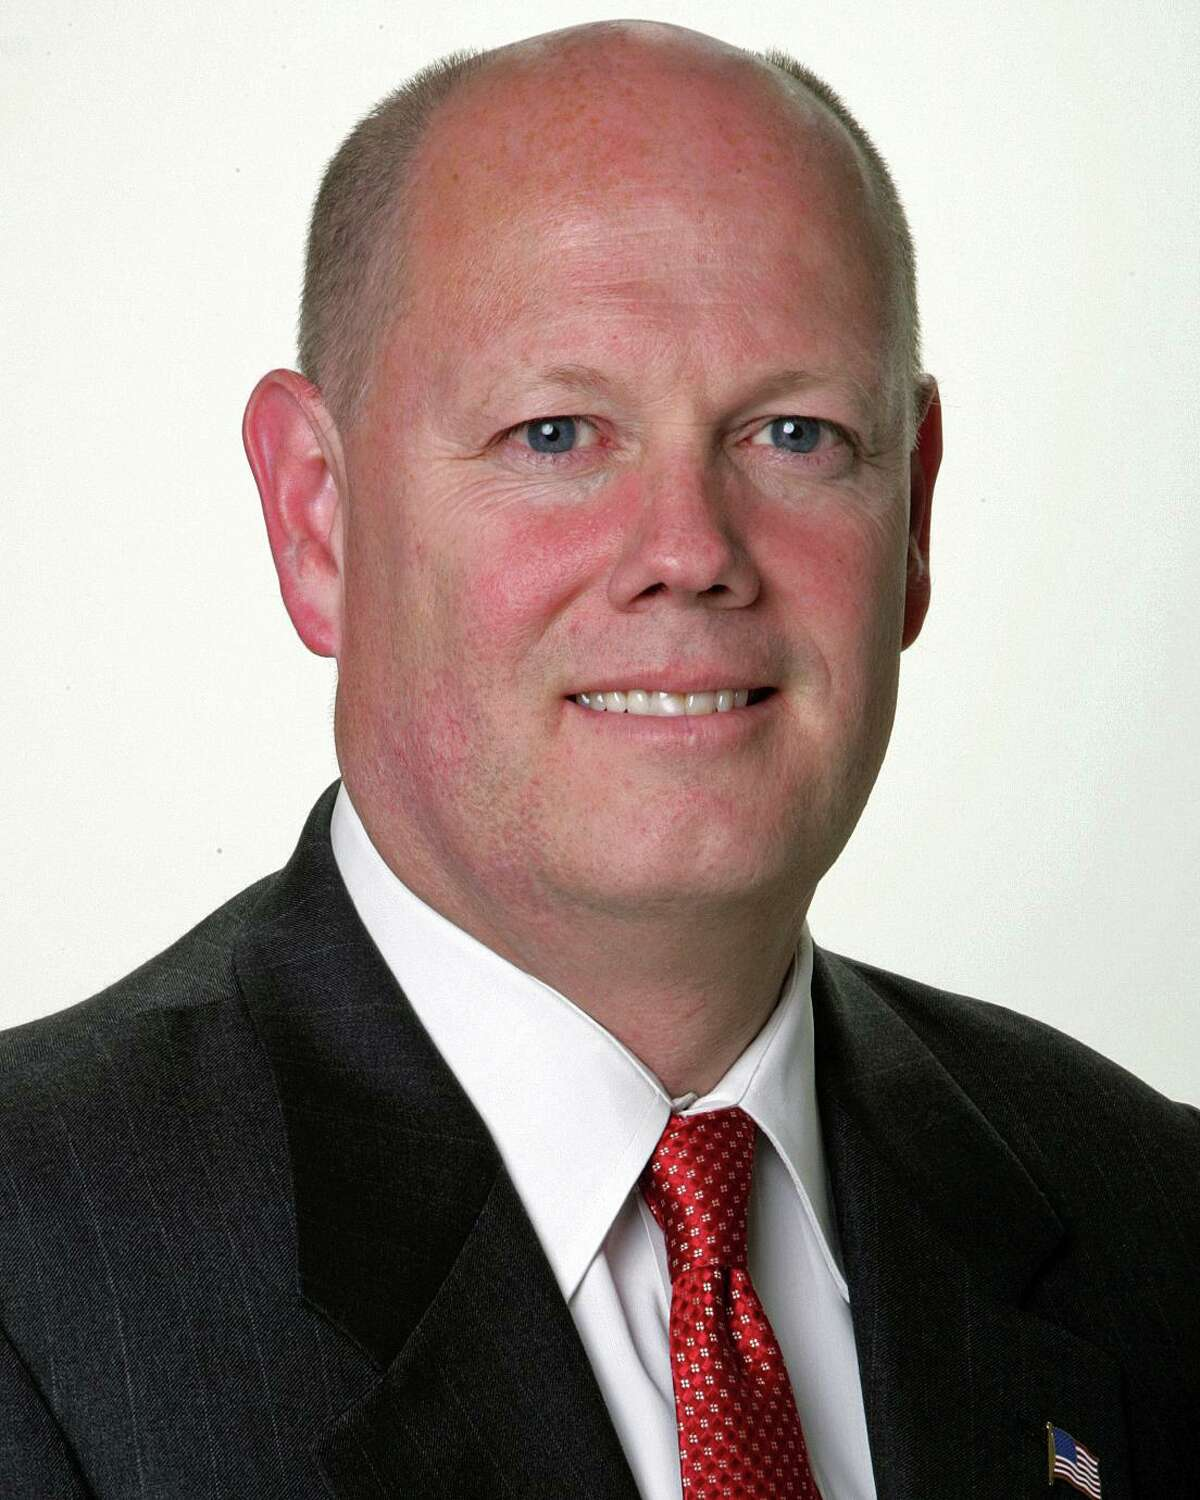 Lawrence Keane, senior vice president and general counsel for the National Shooting Sports Foundation in Newtown.